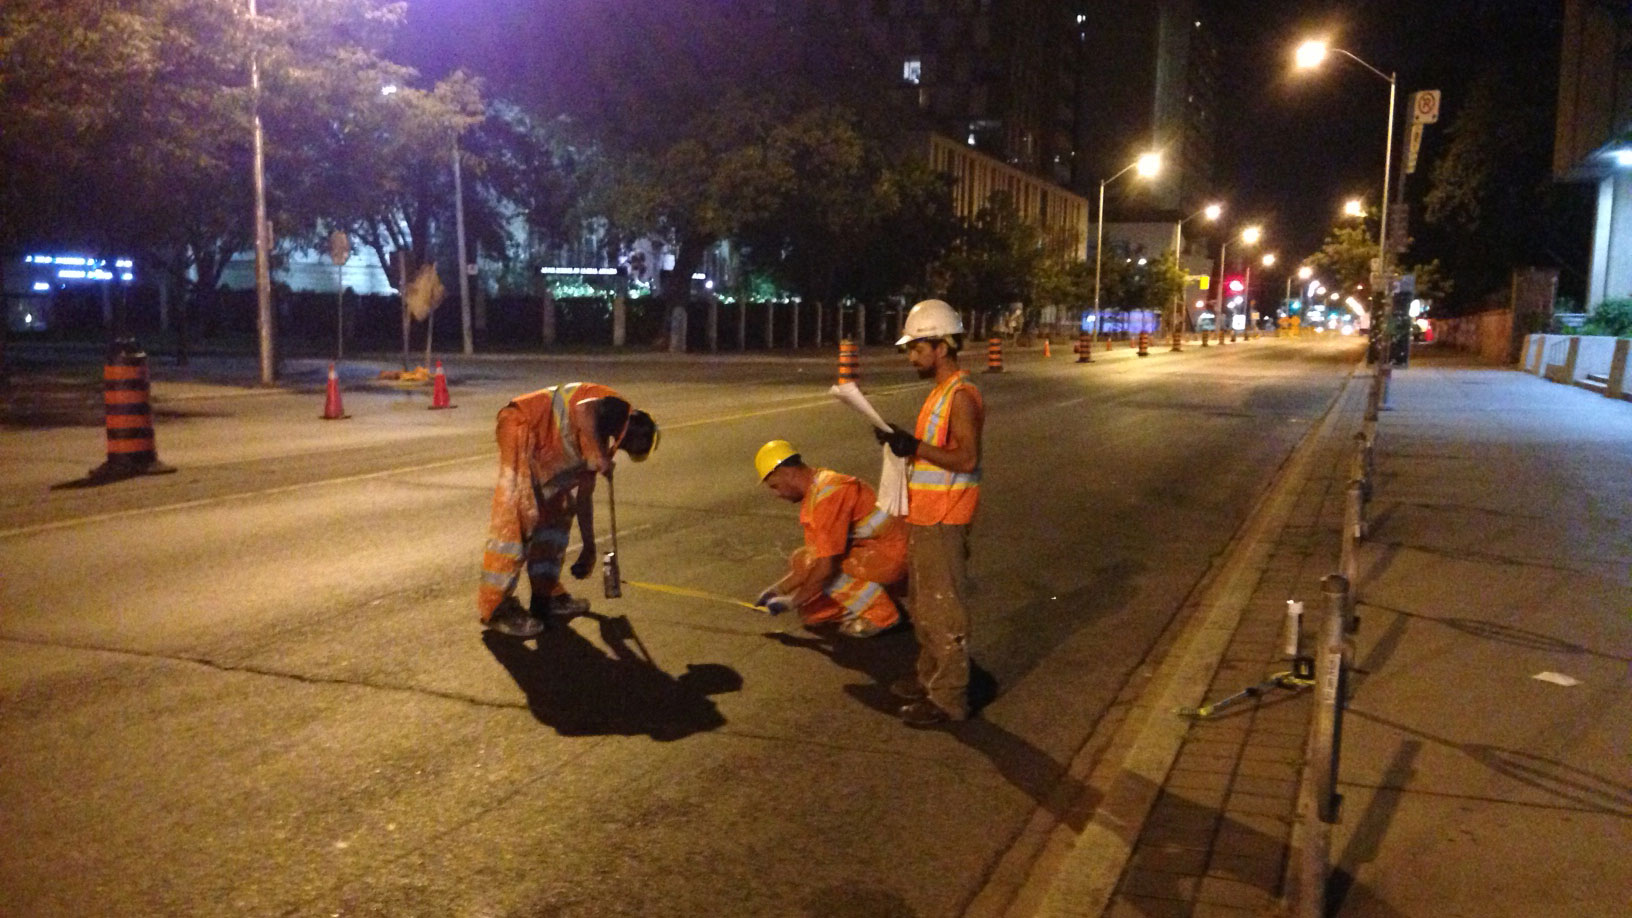 New separated bicycle lanes being installed on a portion of Bloor Street West on Aug. 2, 2016. CITYNEWS/Bertram Dandy